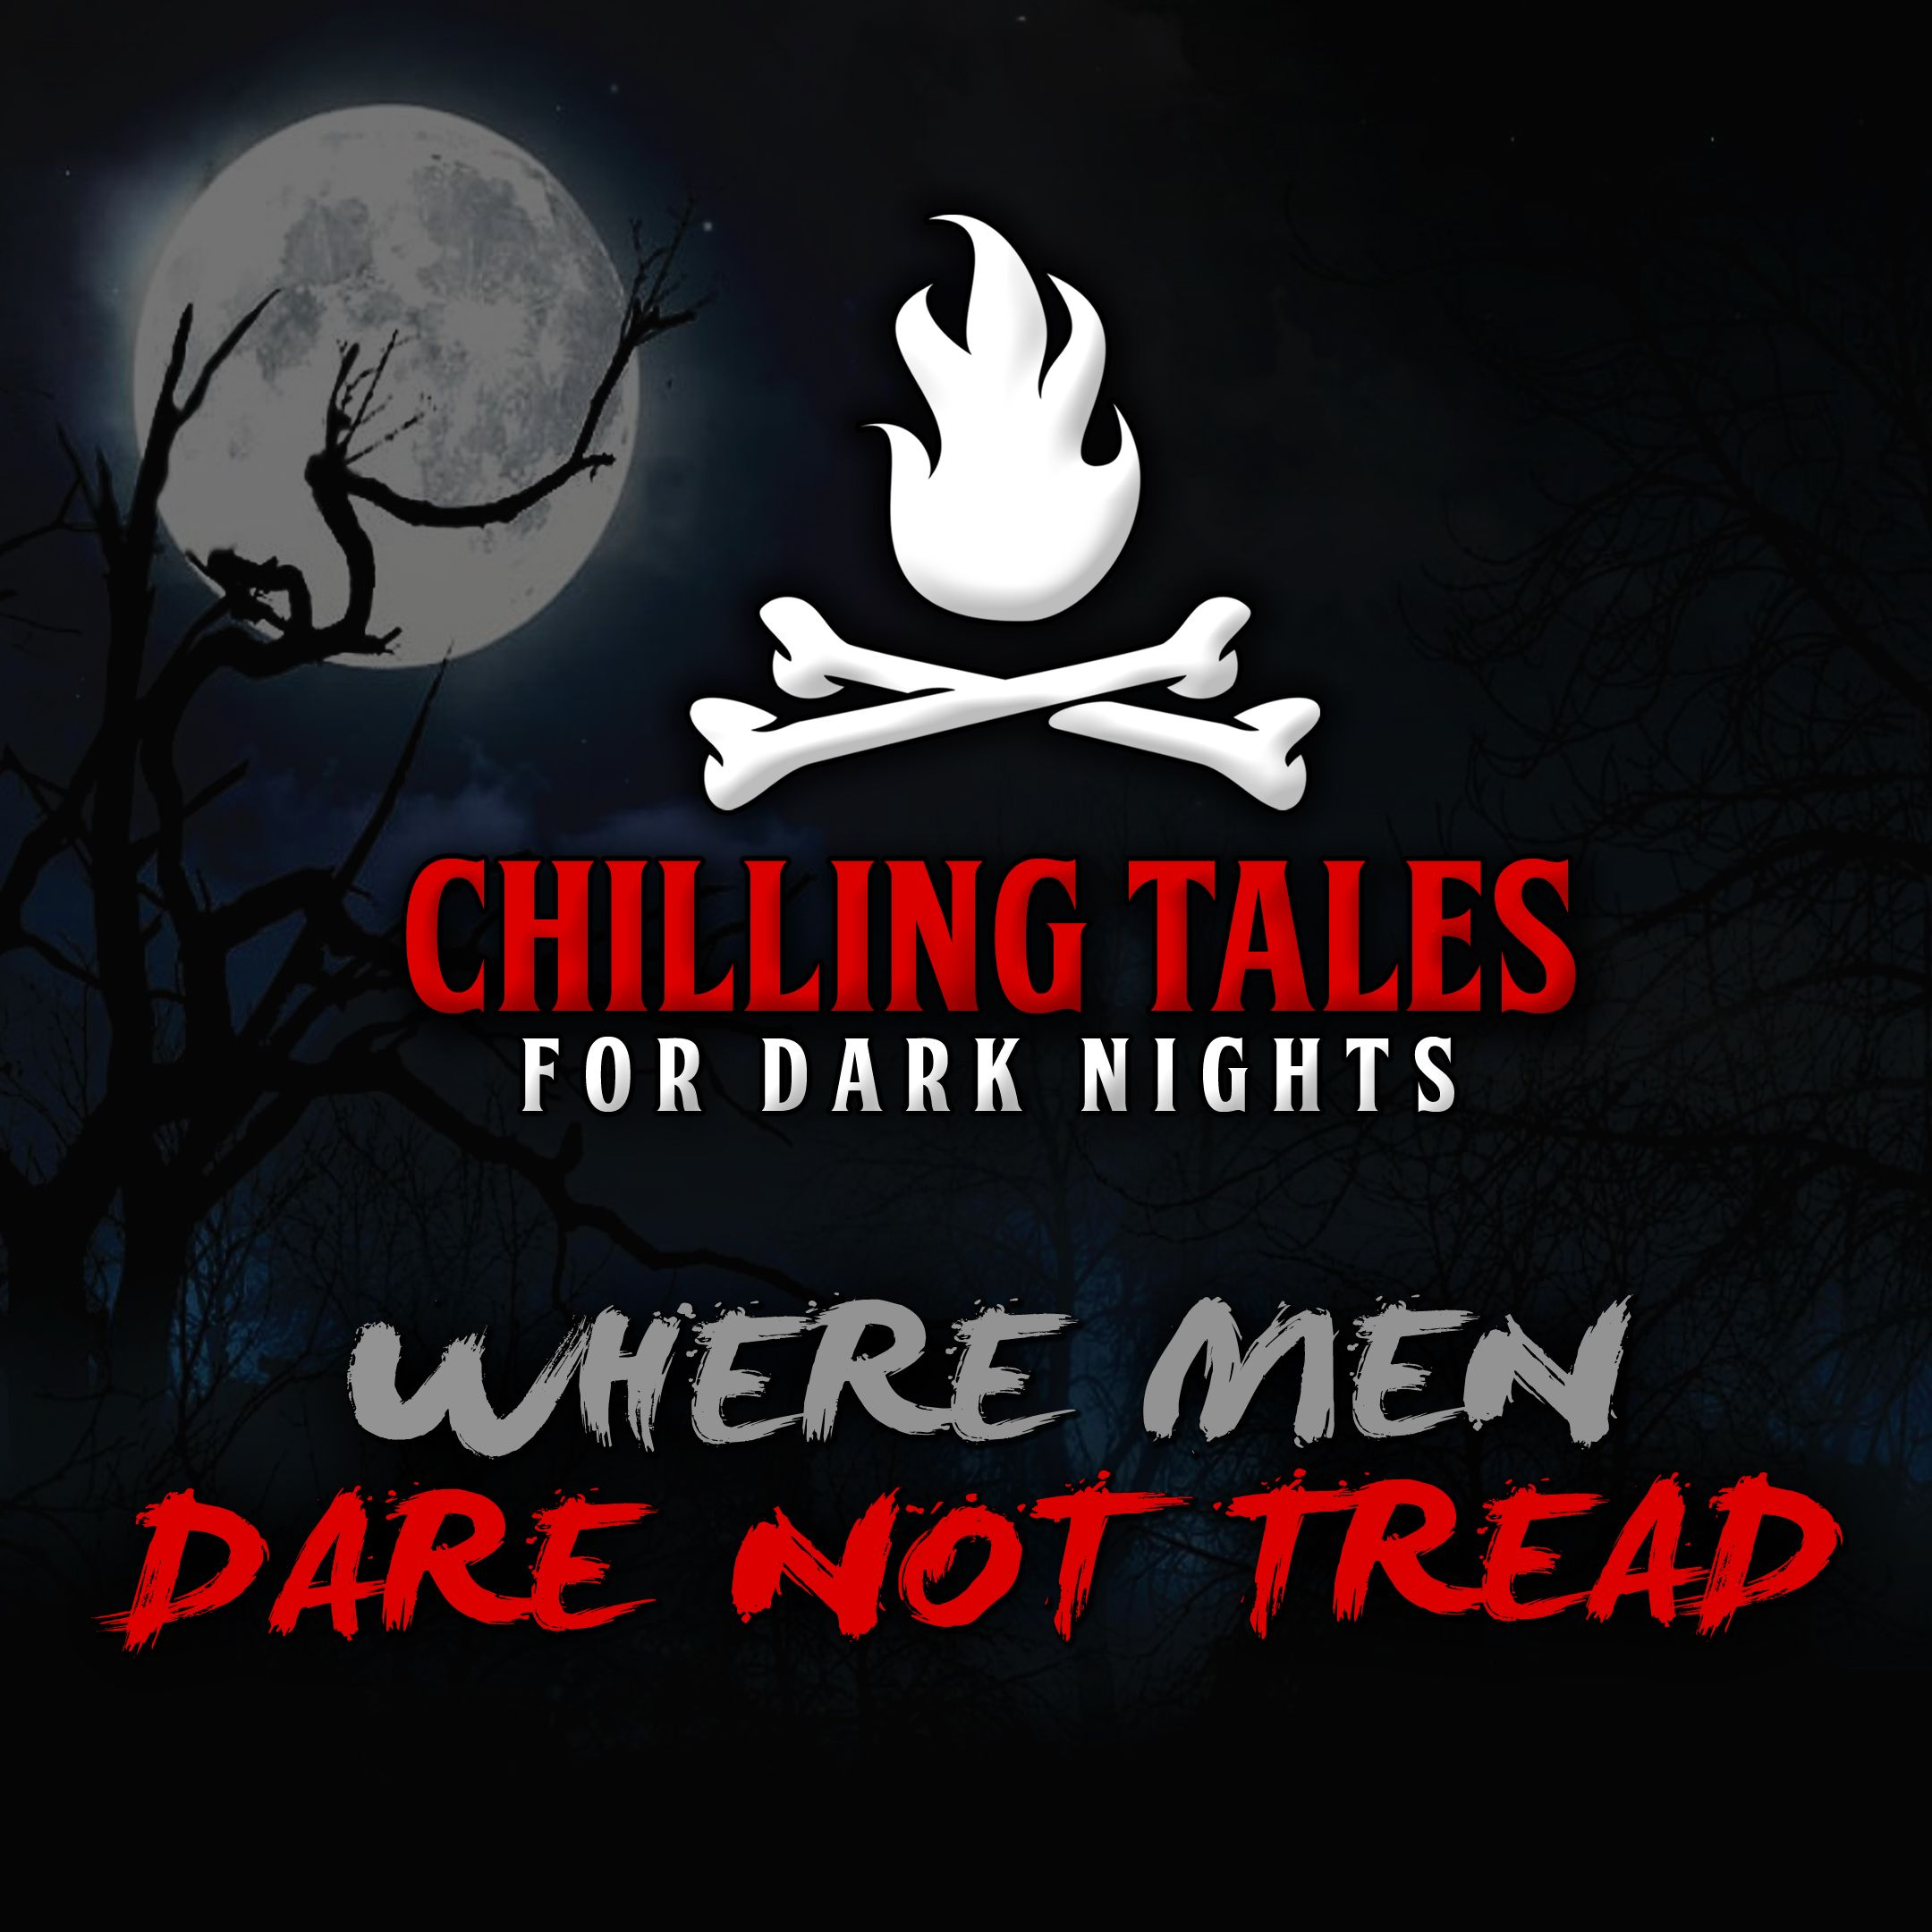 70: Where Men Dare Not Tread – Chilling Tales for Dark Nights